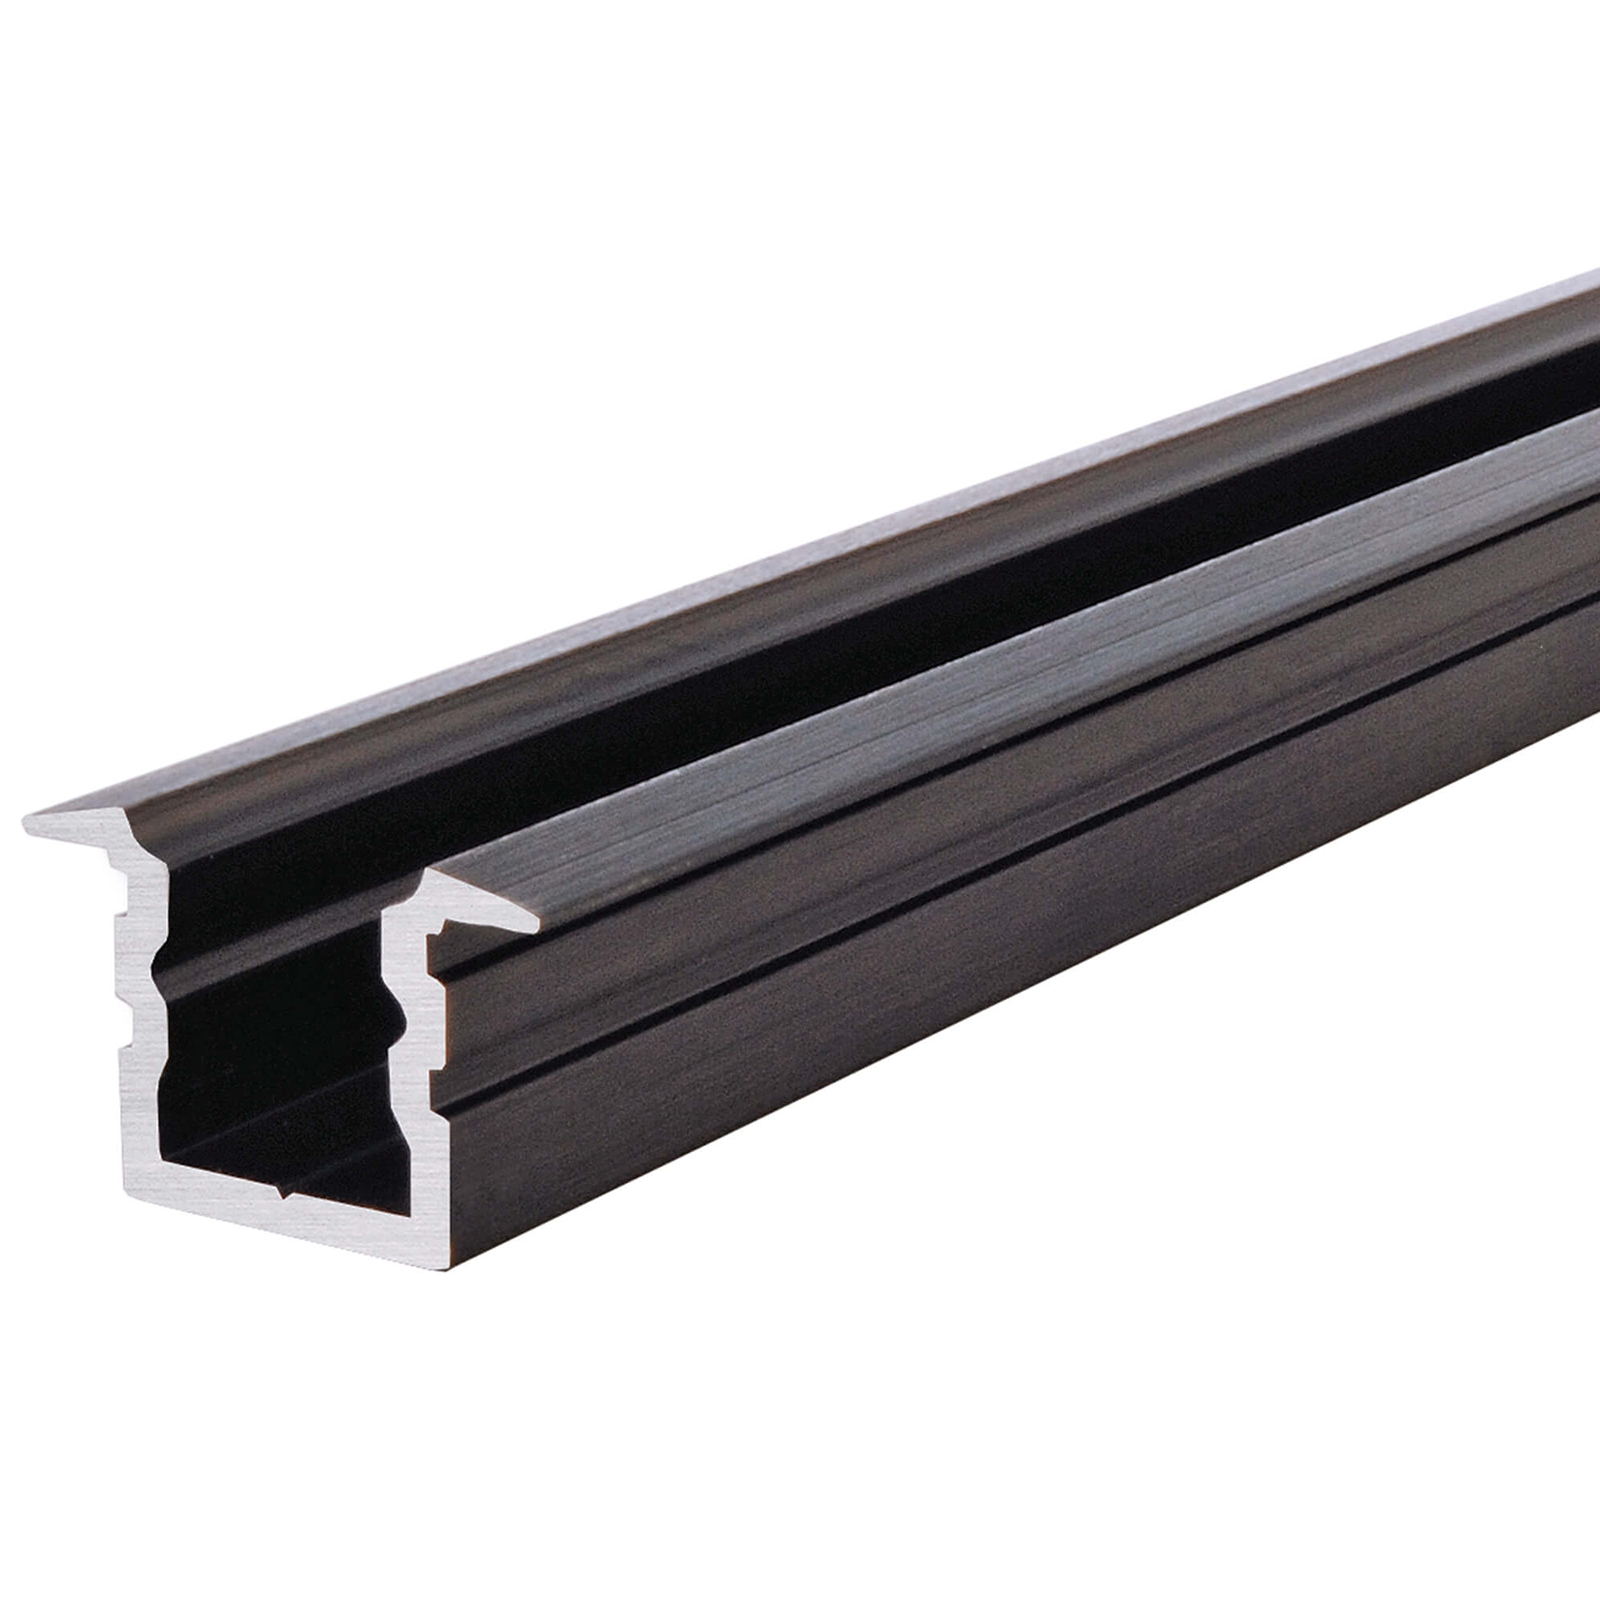 Aluminium profile T-HIGH profile bar, recessed strip lighting profile LED strip